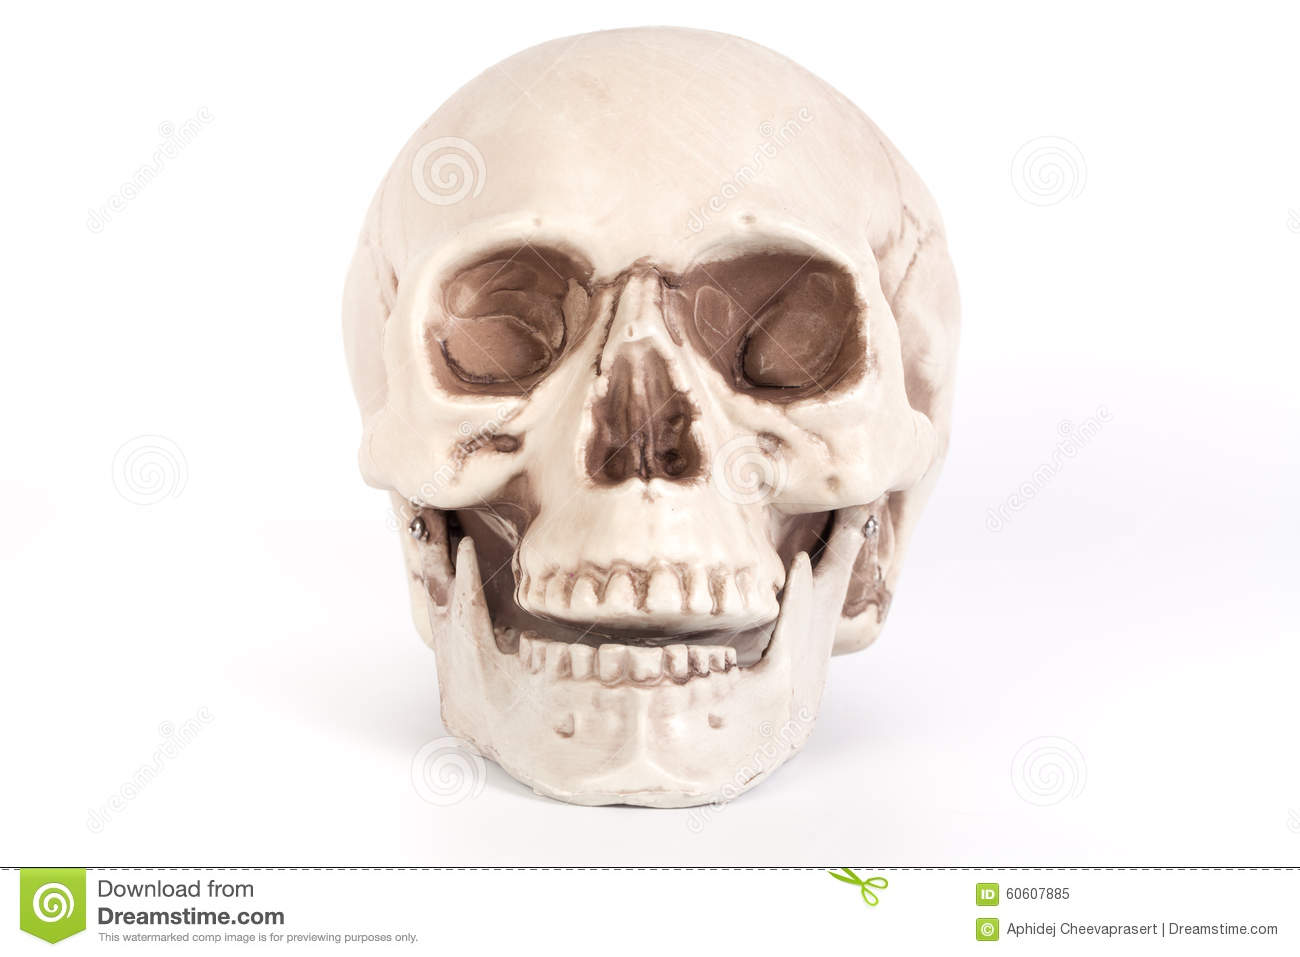 Human skull front view jaw open